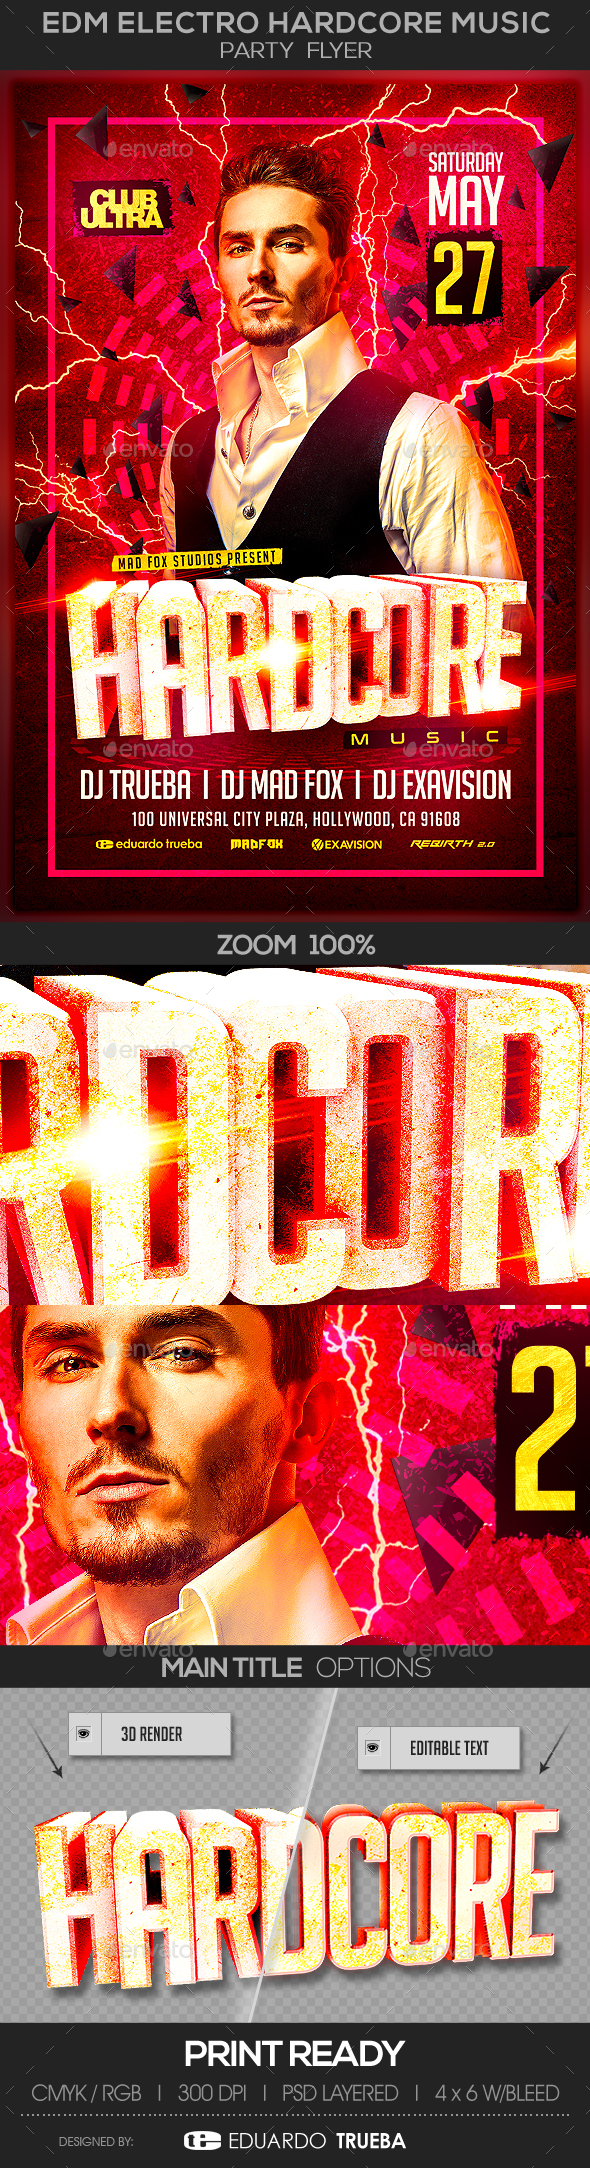 EDM Electro Hardcore Music Party Flyer - Clubs & Parties Events